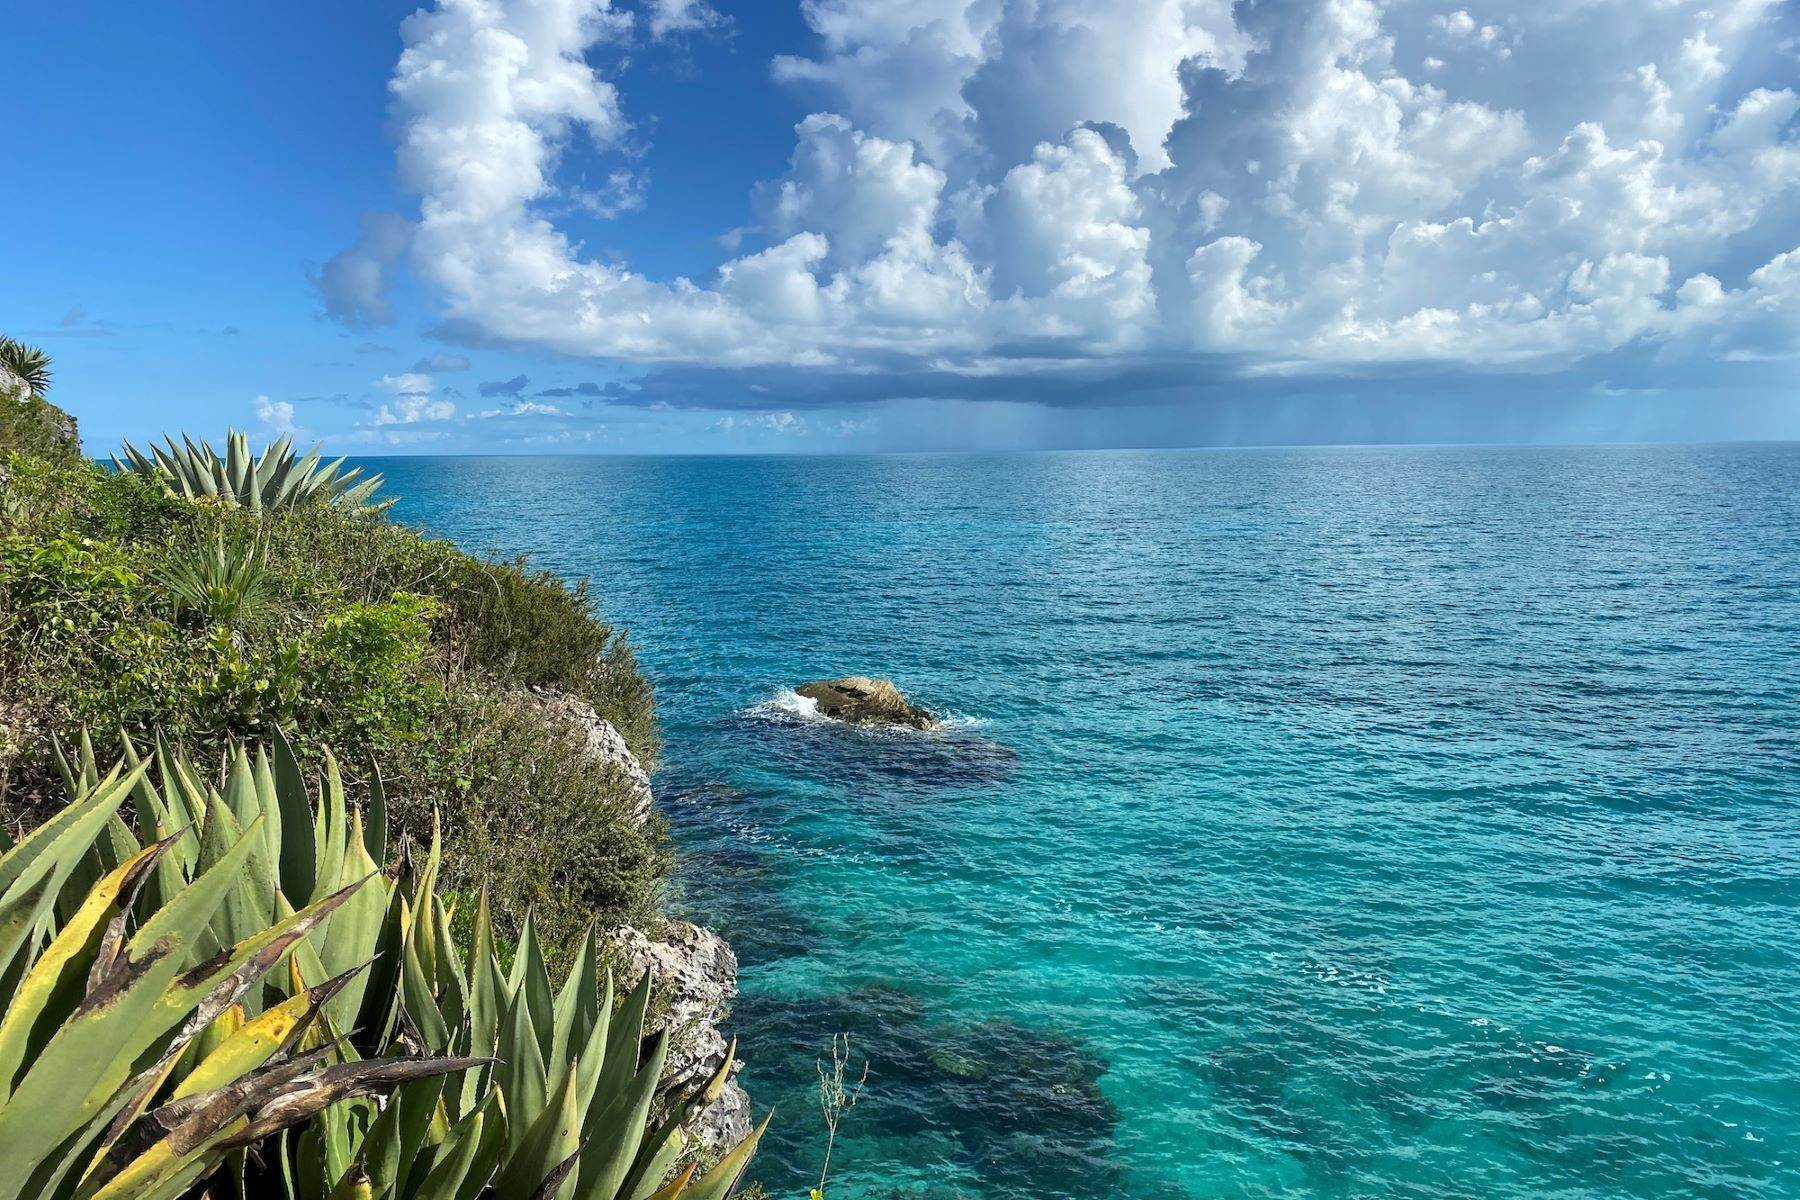 Land for Sale at 19.051 Acres in Gregory Town Gregory Town, Eleuthera Bahamas